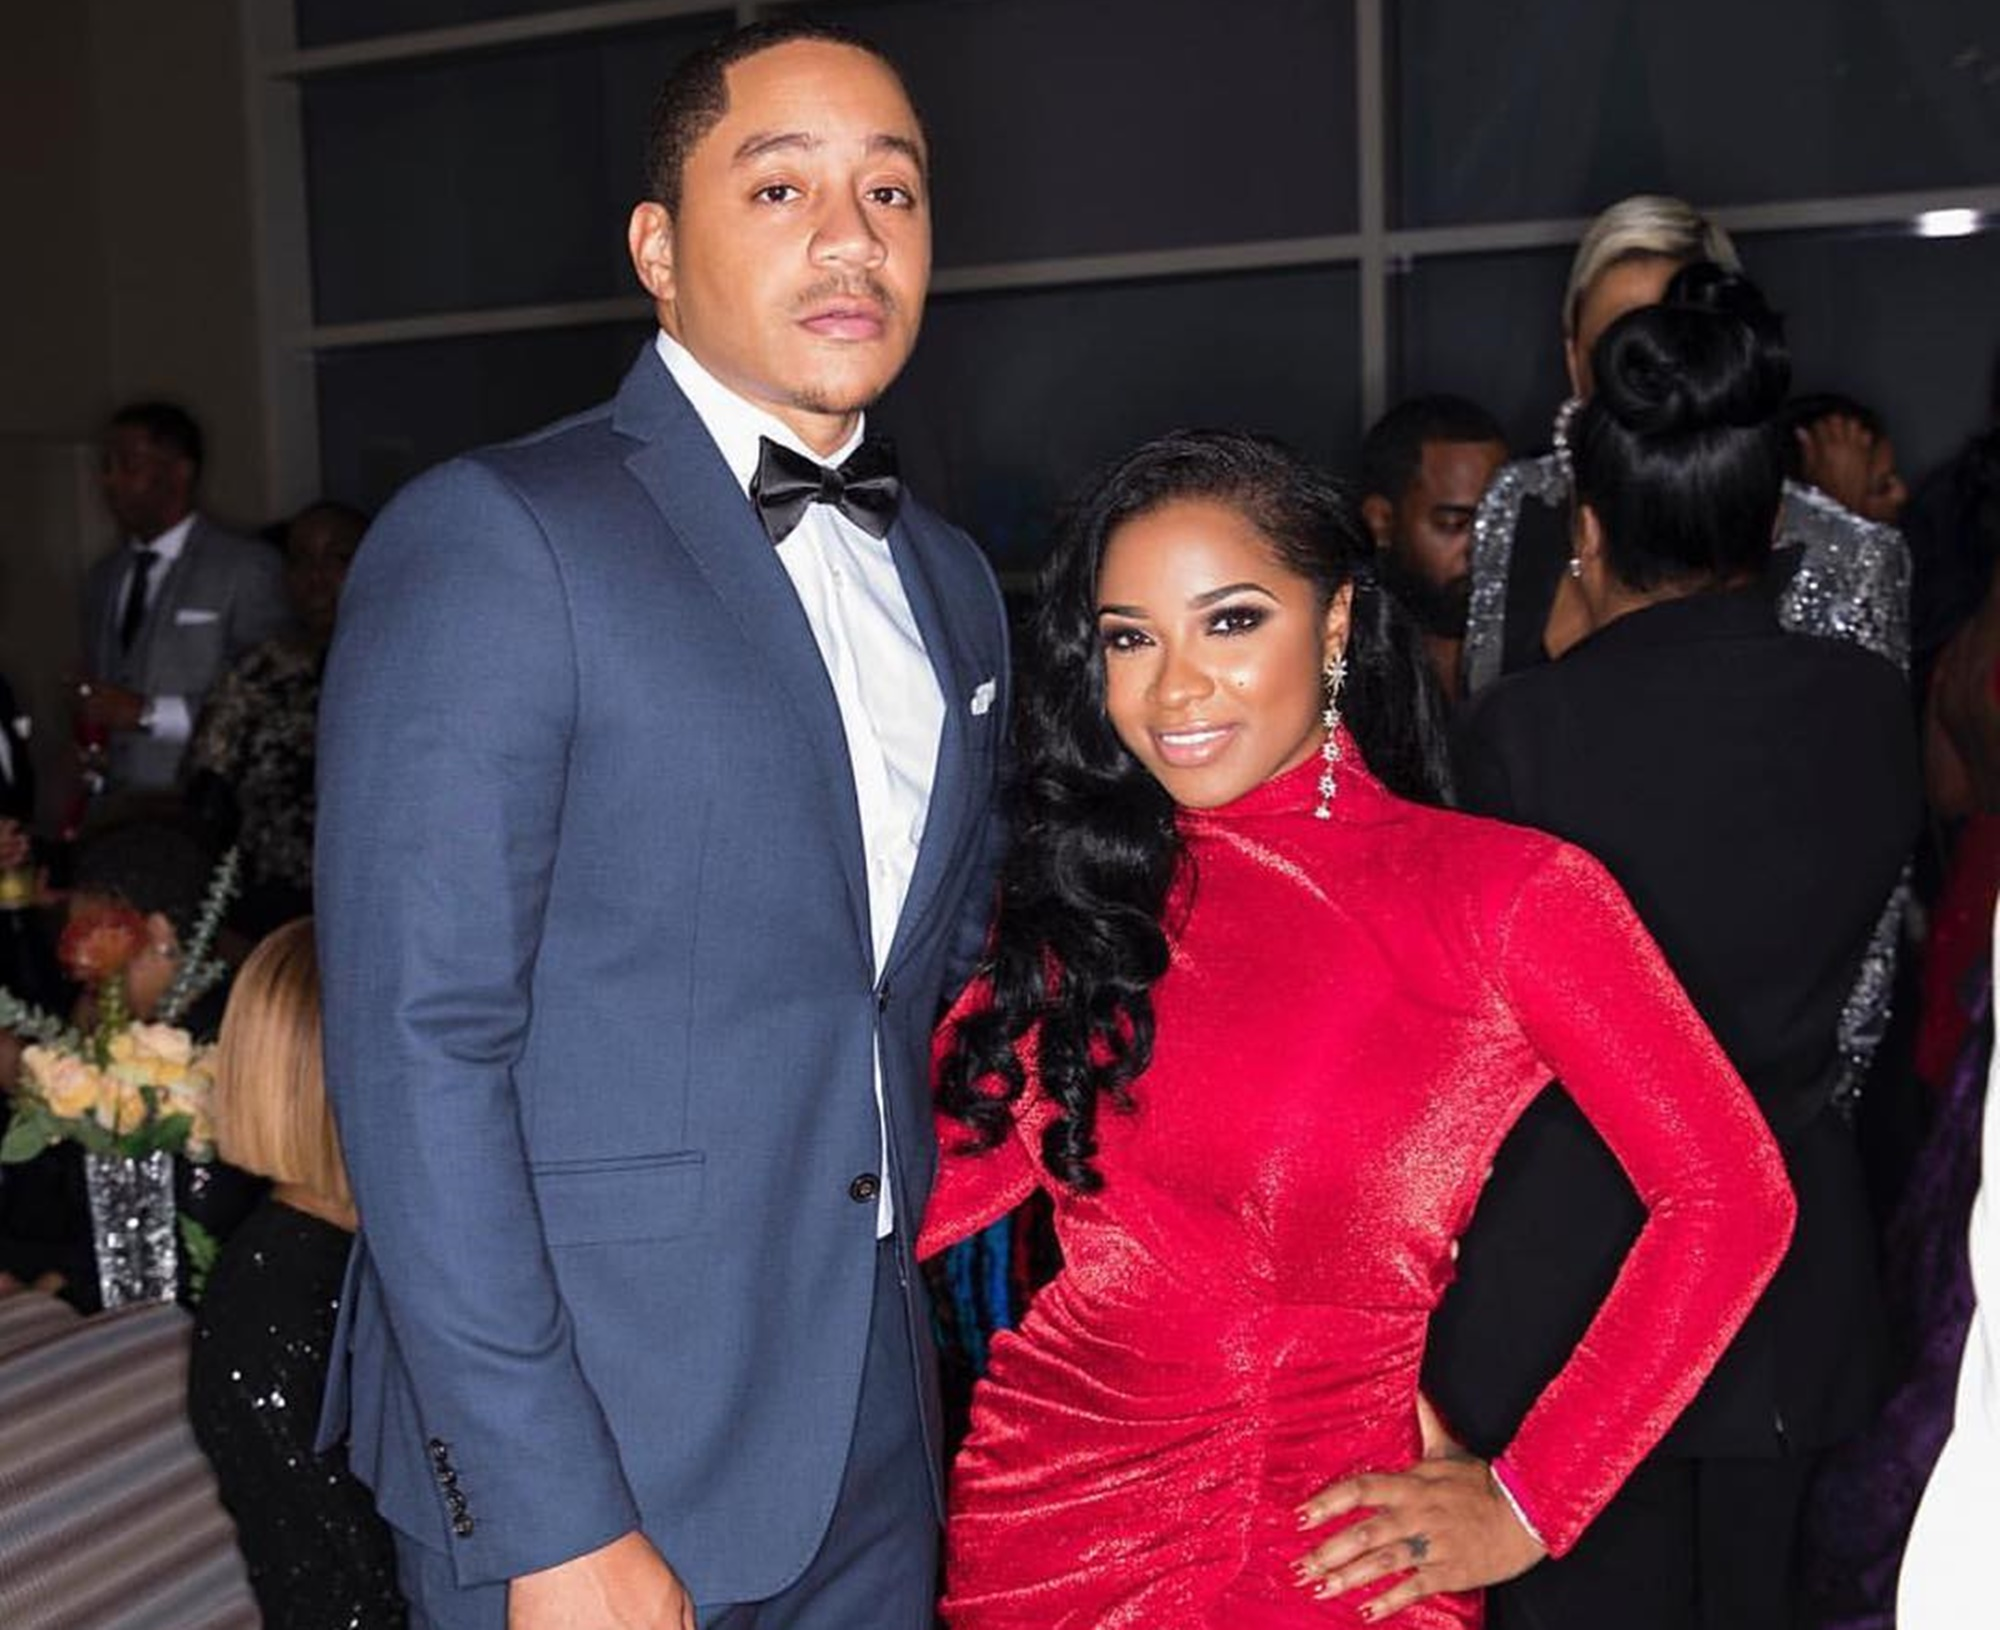 toya-wright-shares-workout-videos-with-robert-rushing-they-are-headed-to-boo-camp-and-here-is-why